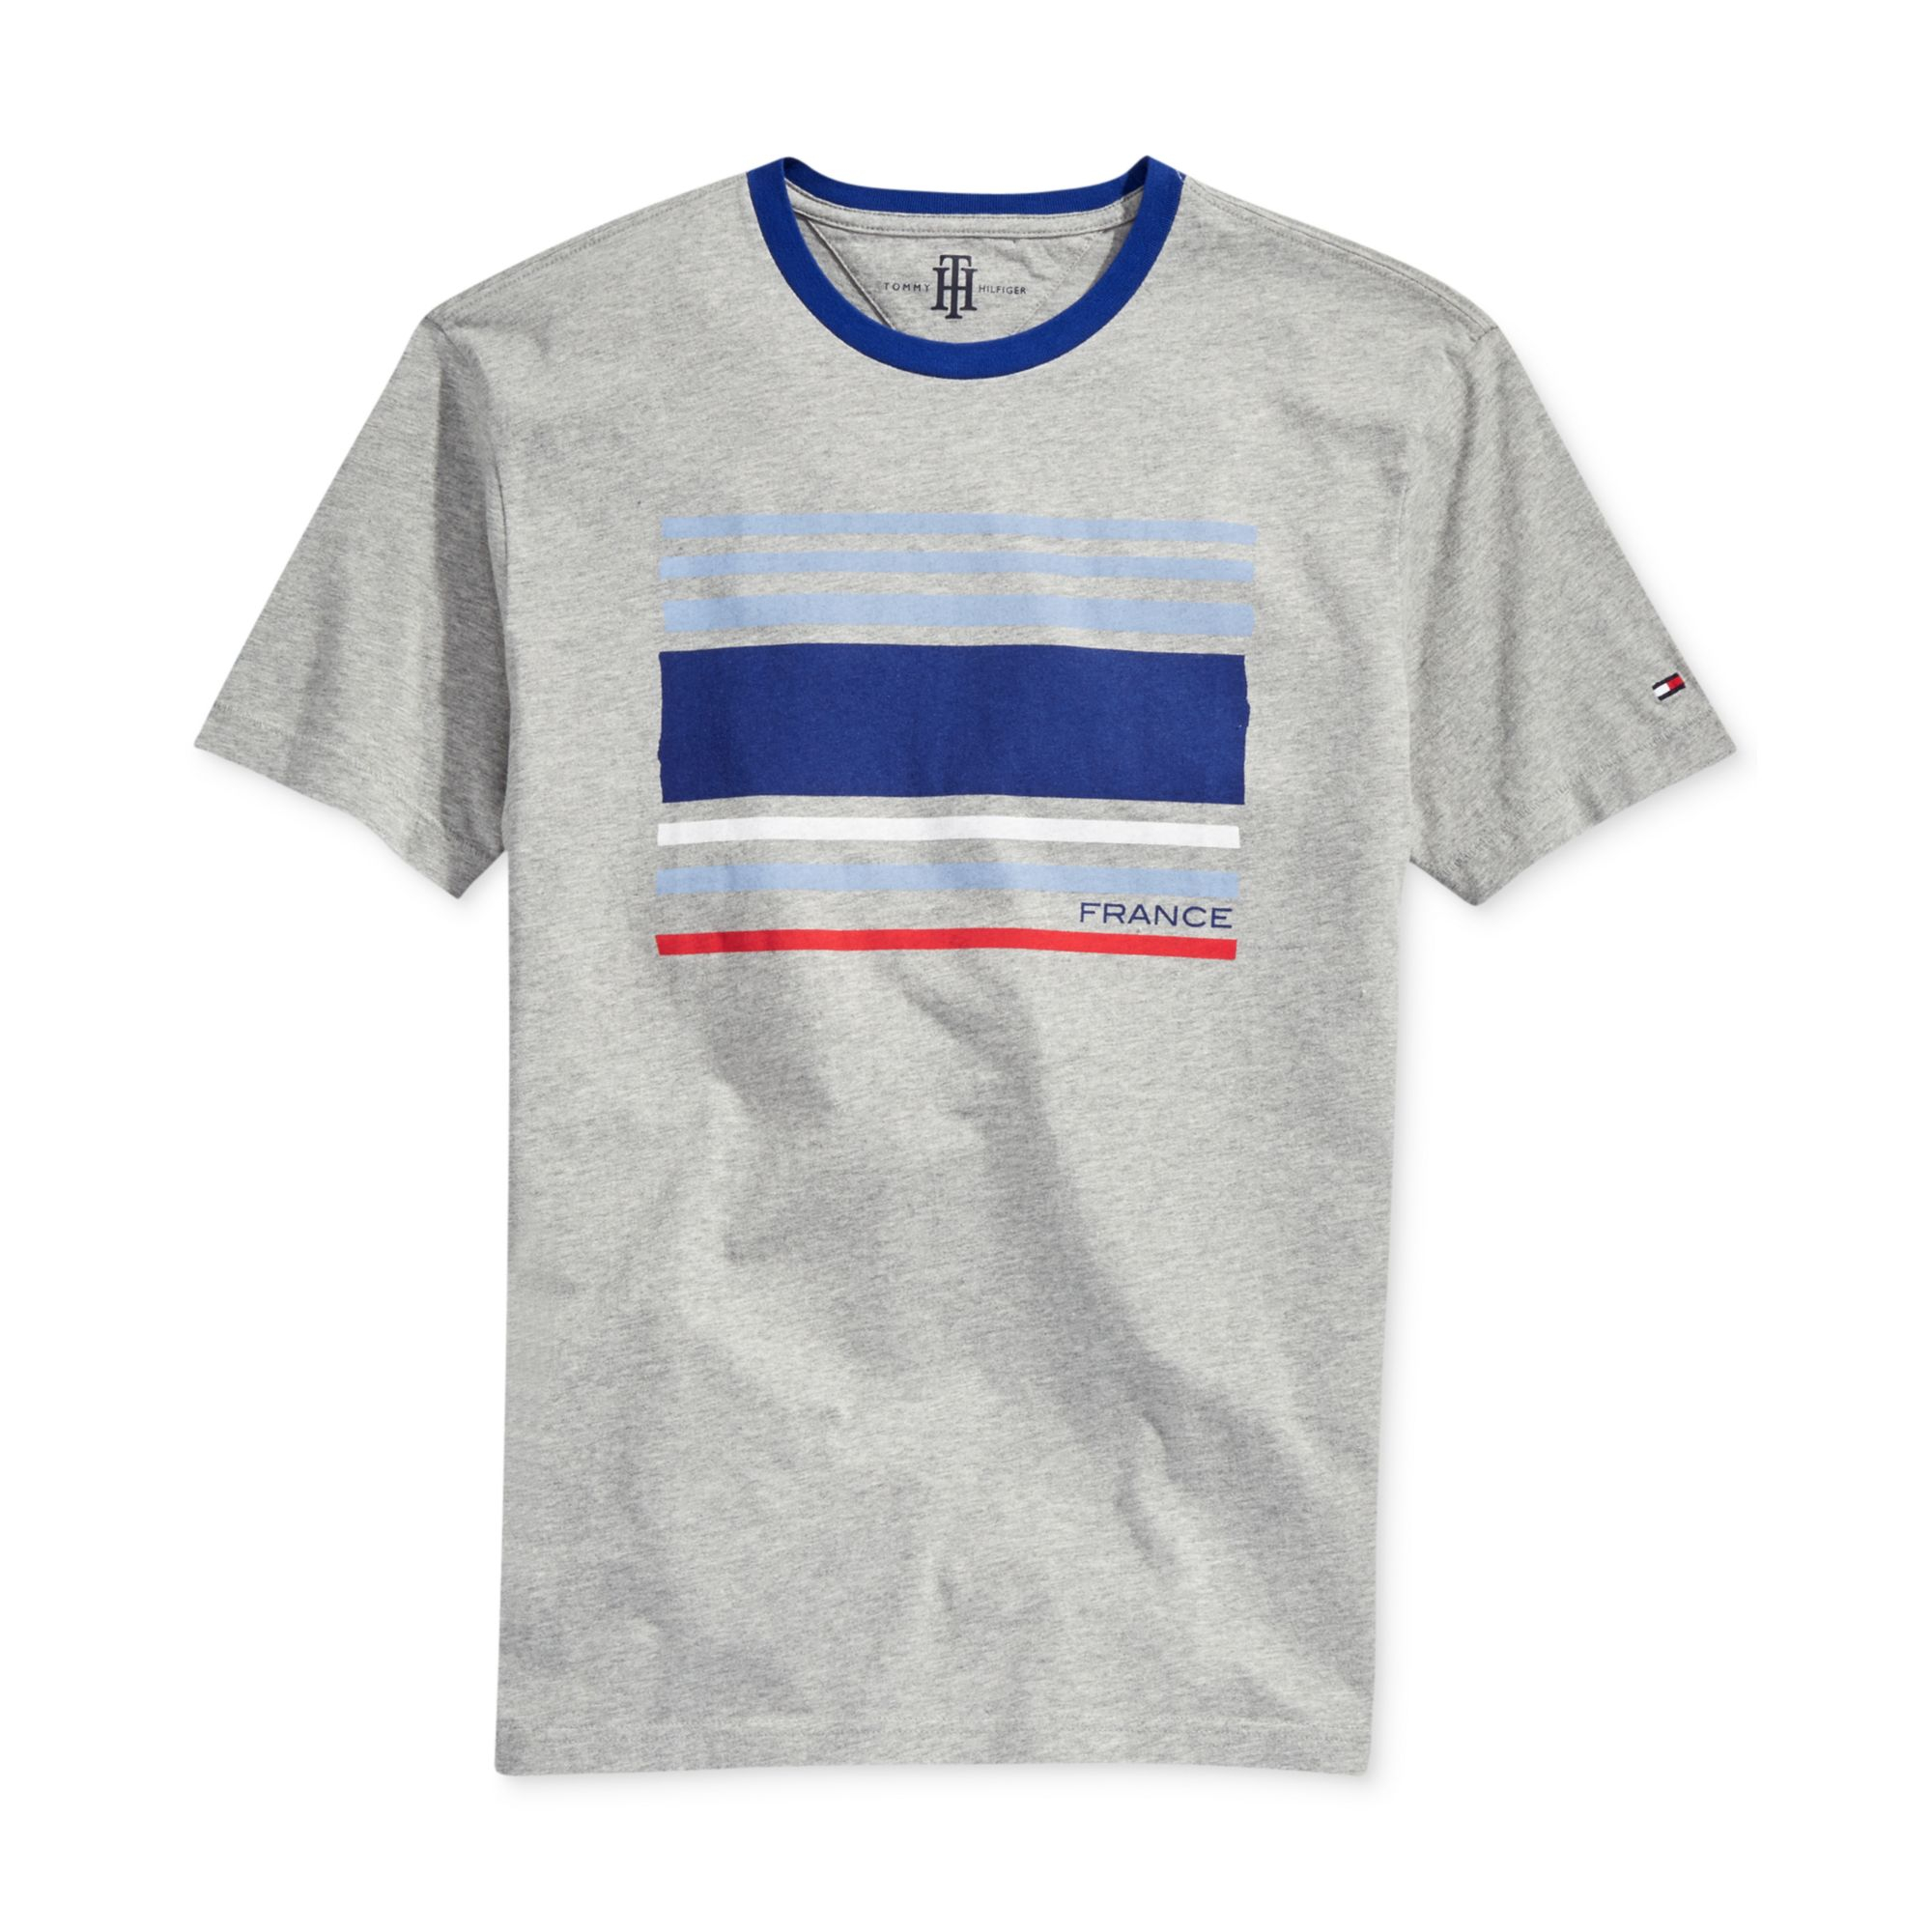 Lyst - Tommy Hilfiger France World Cup Tshirt in Gray for Men 0051b23bb198